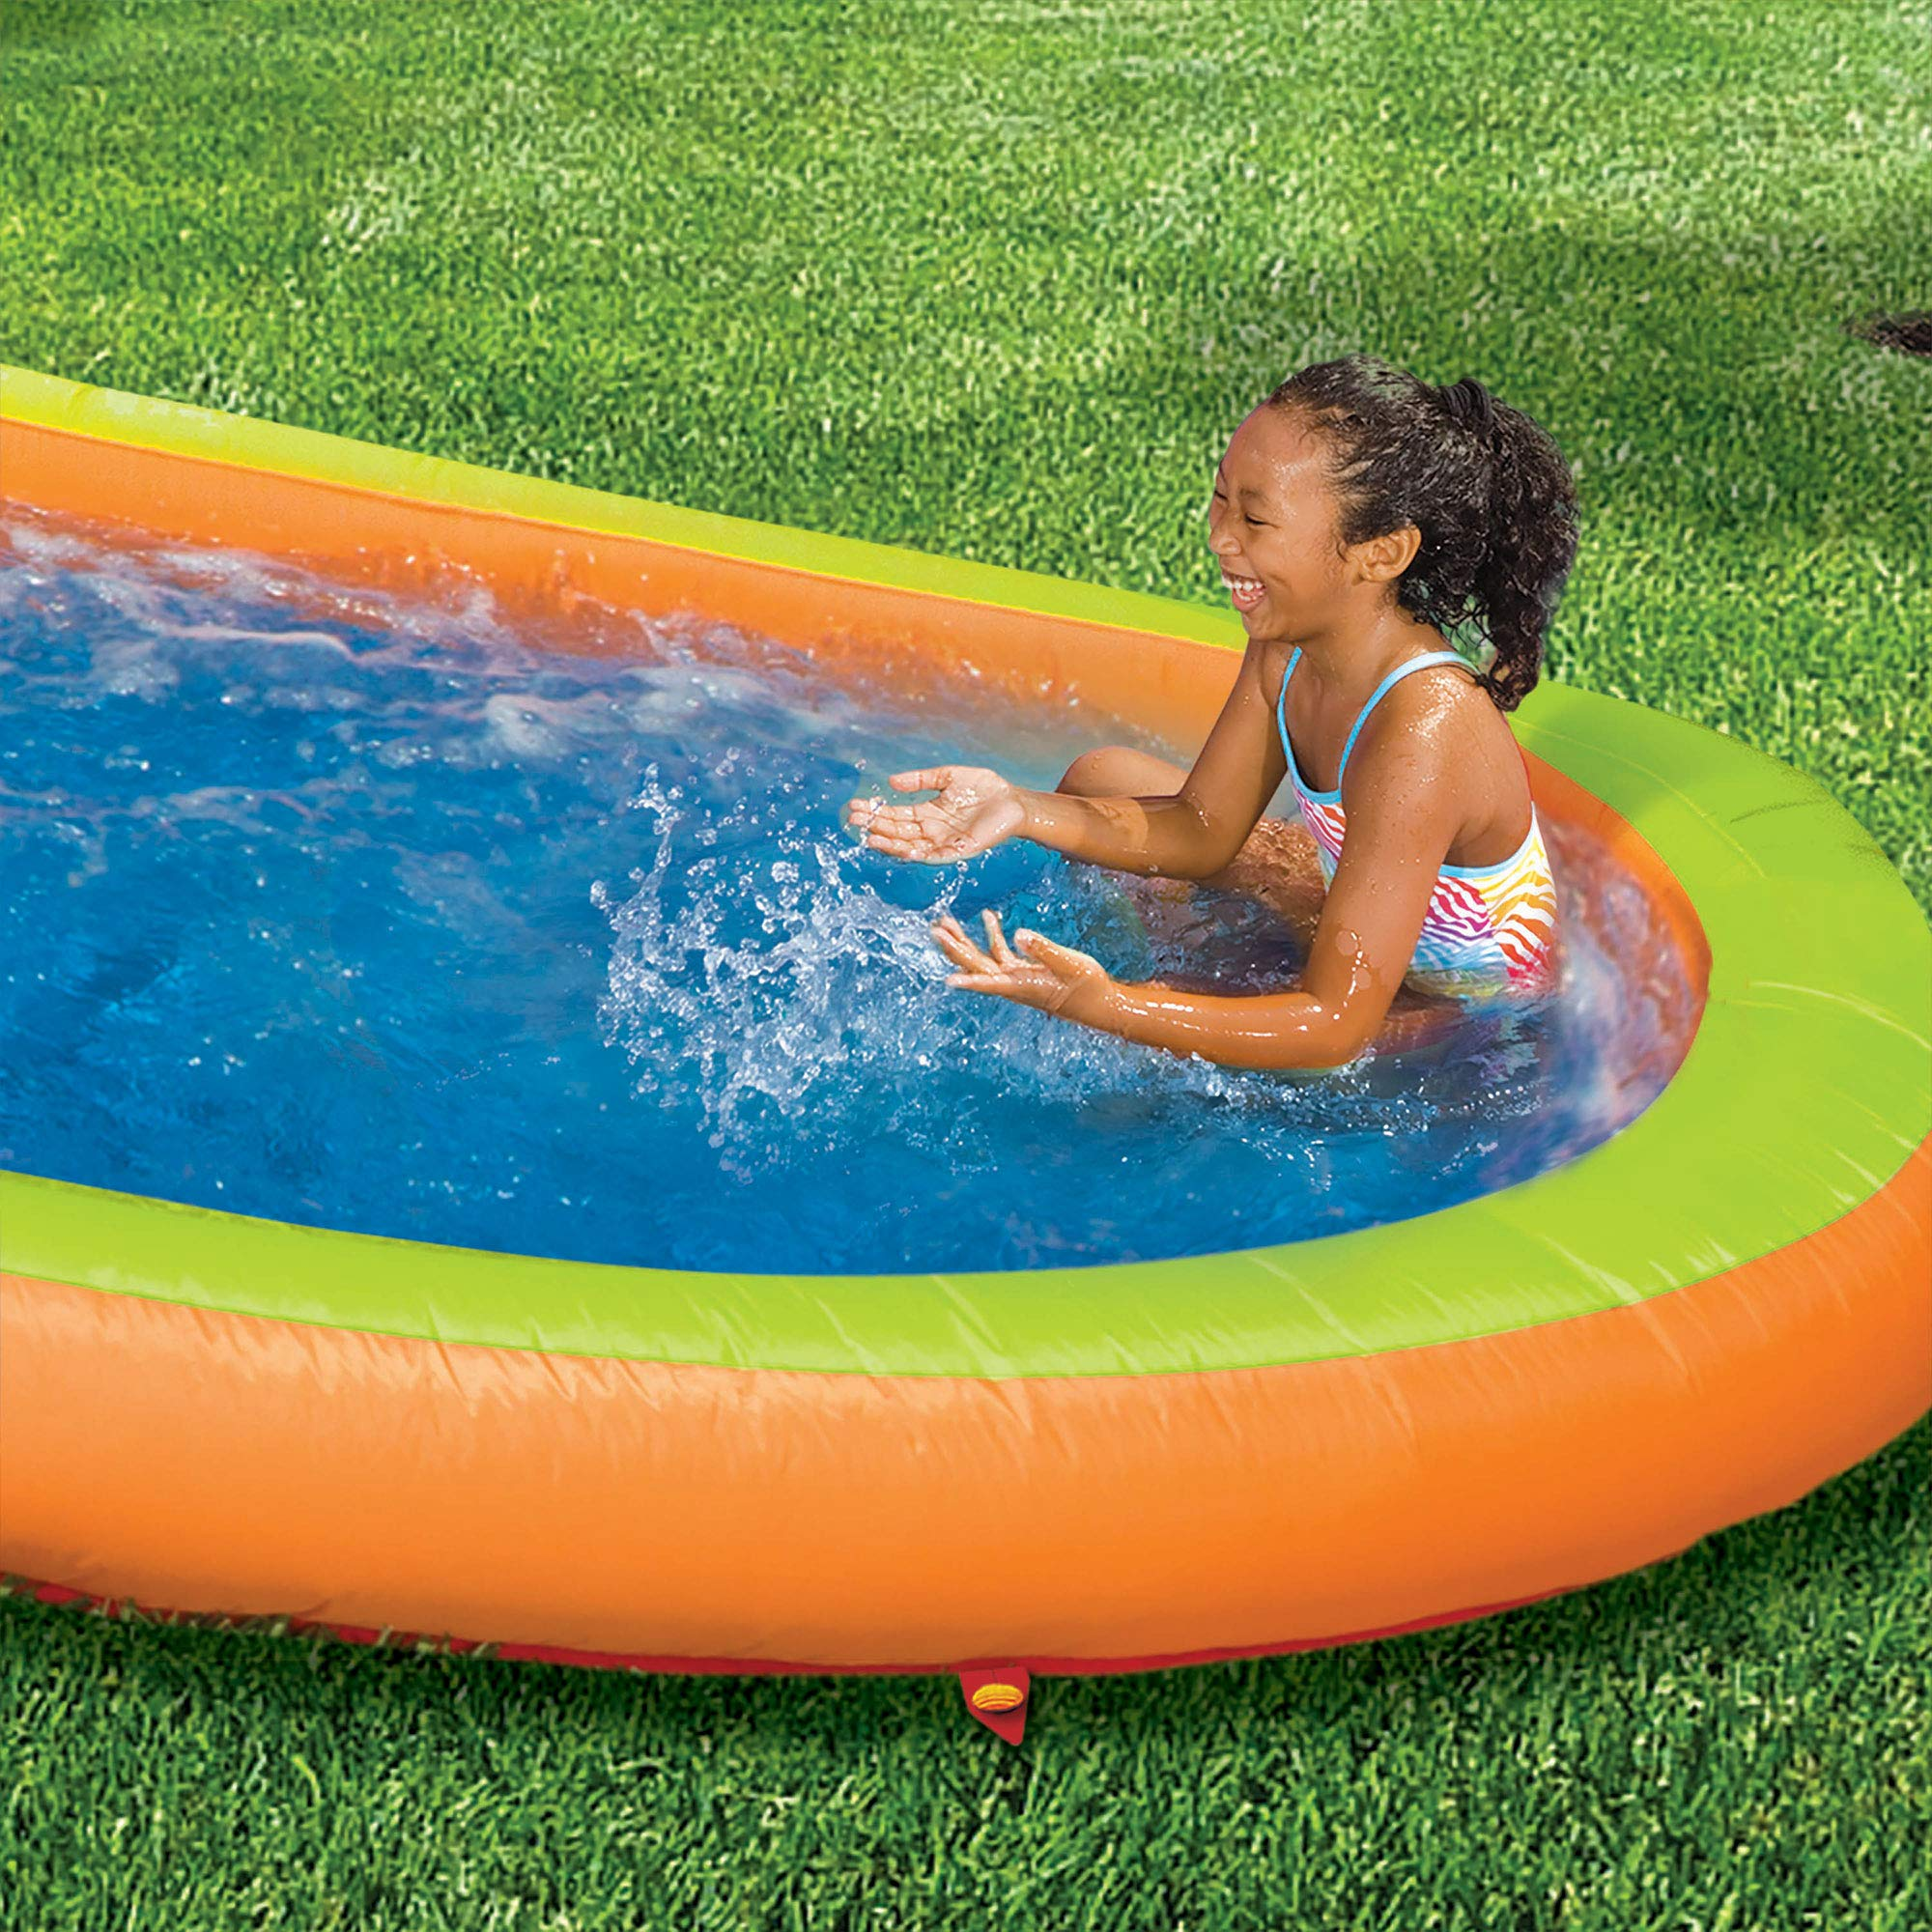 BANZAI Lazy River Inflatable Outdoor Adventure Water Park Slide and Splash Pool by BANZAI (Image #4)